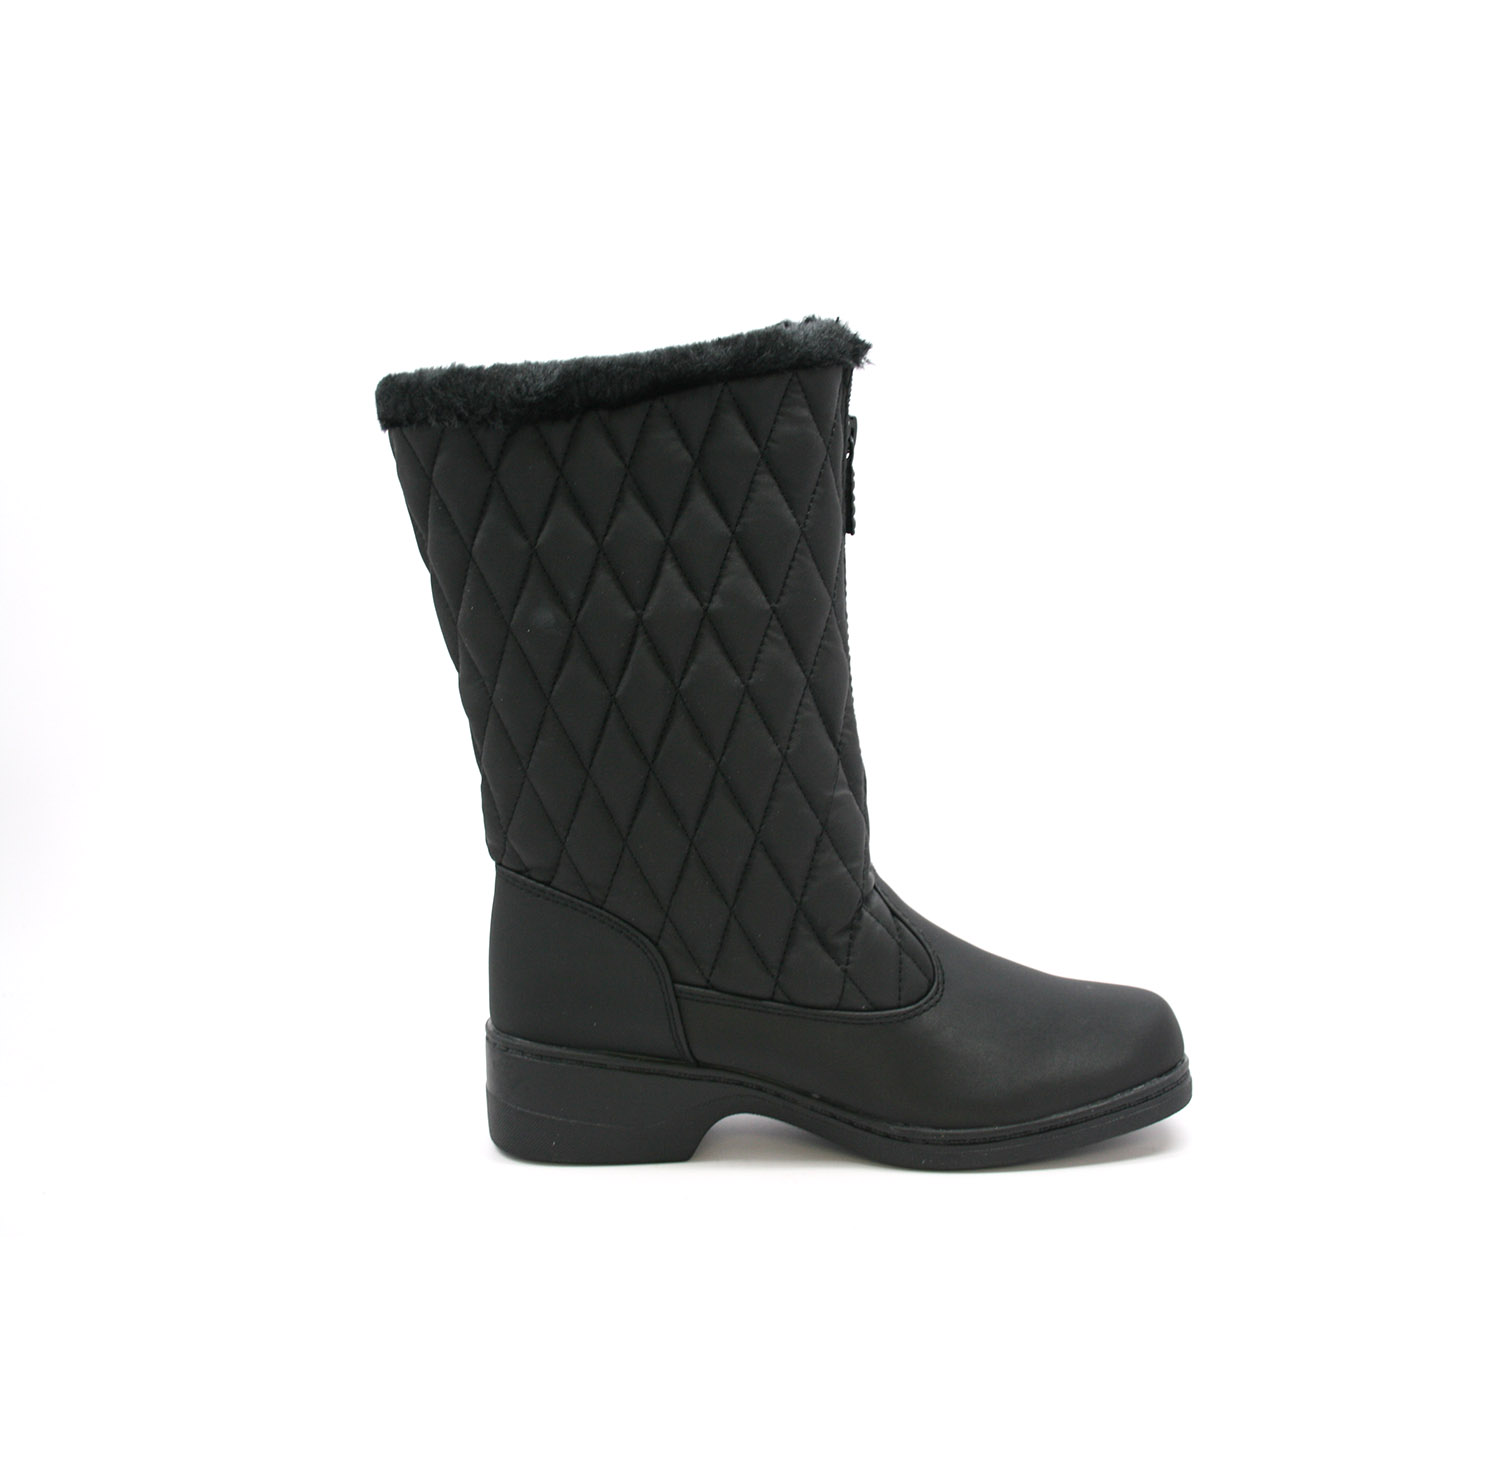 Totes Womens Wide Width Snow Boots | Homewood Mountain Ski Resort